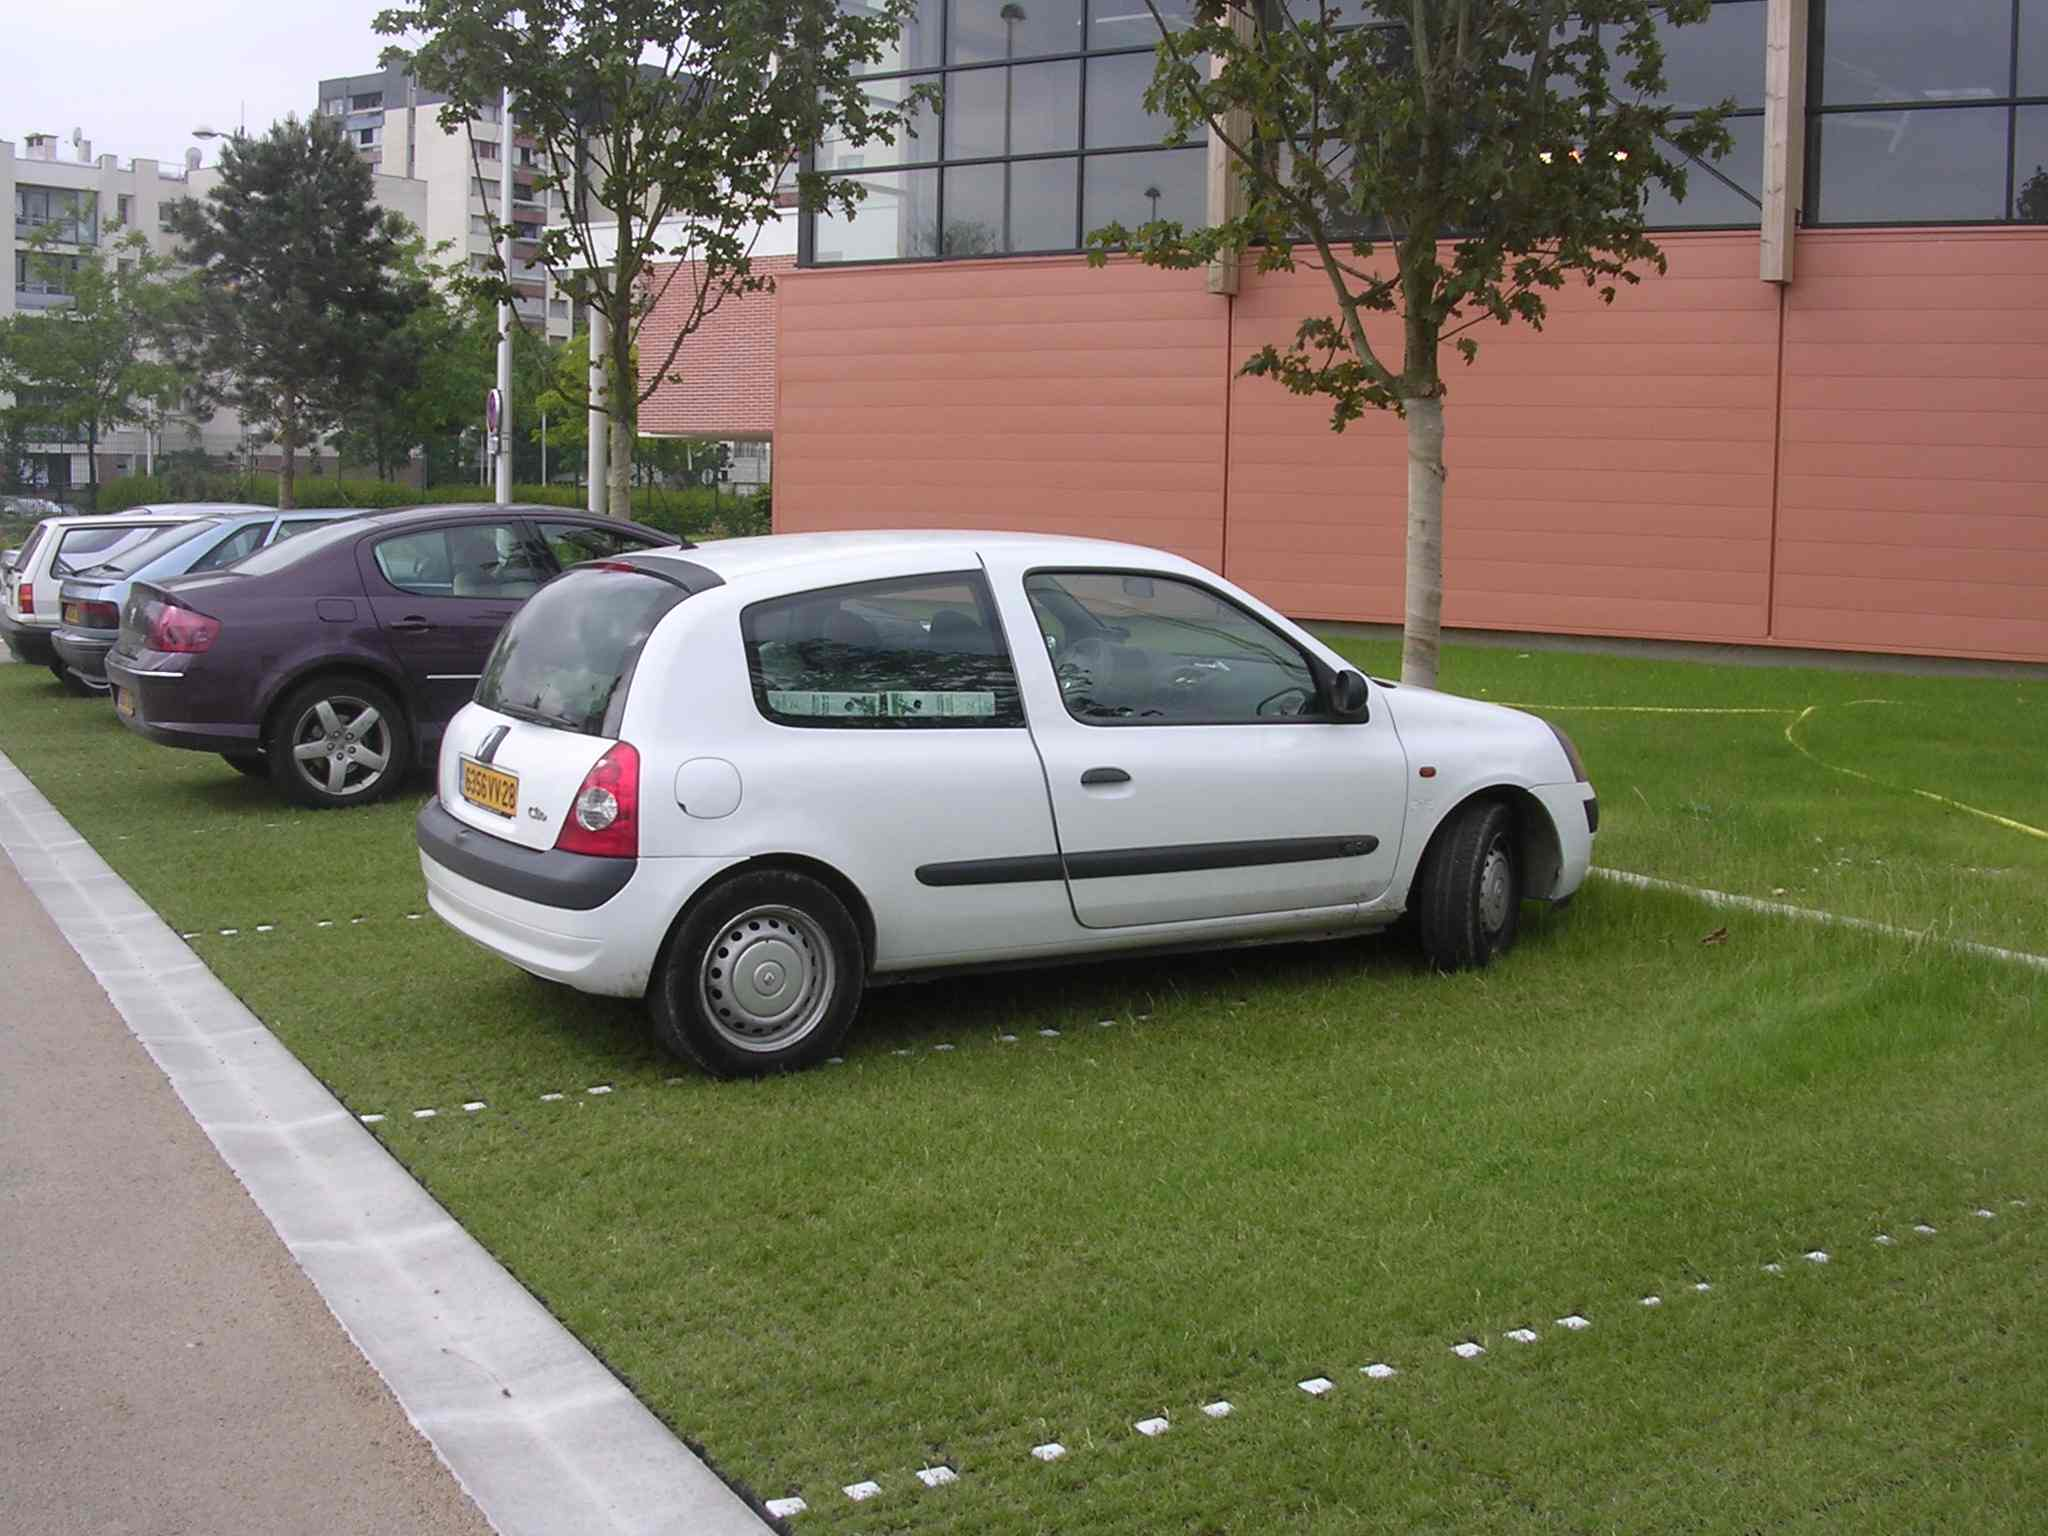 EcoGrid - Reinforced Grass Parking